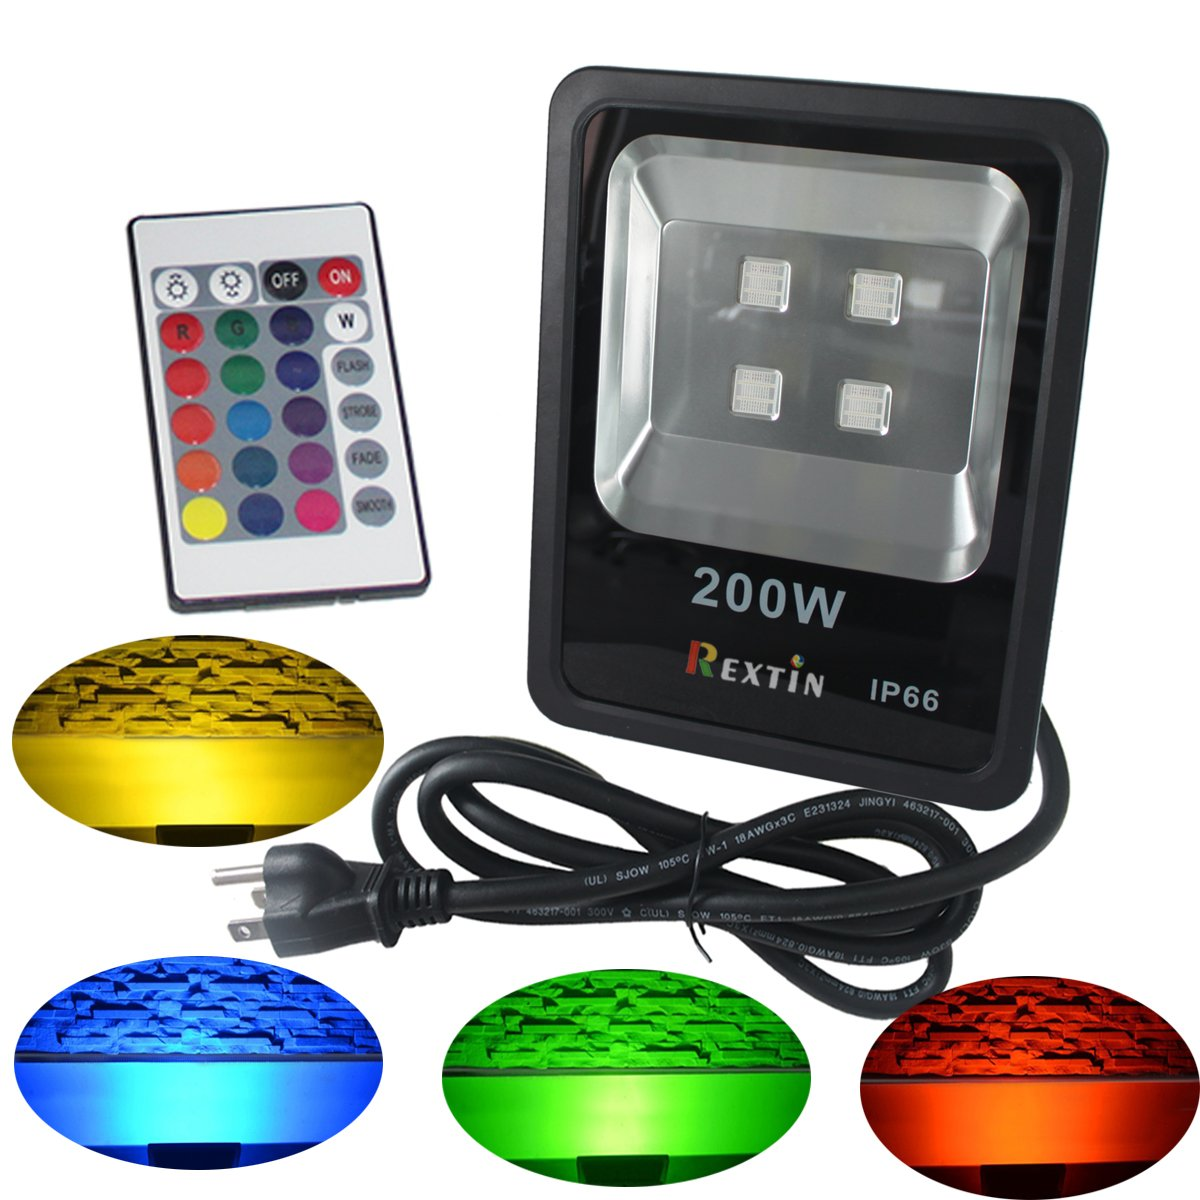 Rextin 200W Waterproof RGB LED Flood Lights Outdoor Color Changing LED securtity light with US 3 Plug , Wall Washer Light 16 Colors & 4 Modes with Remote Control (200W) by Rextin